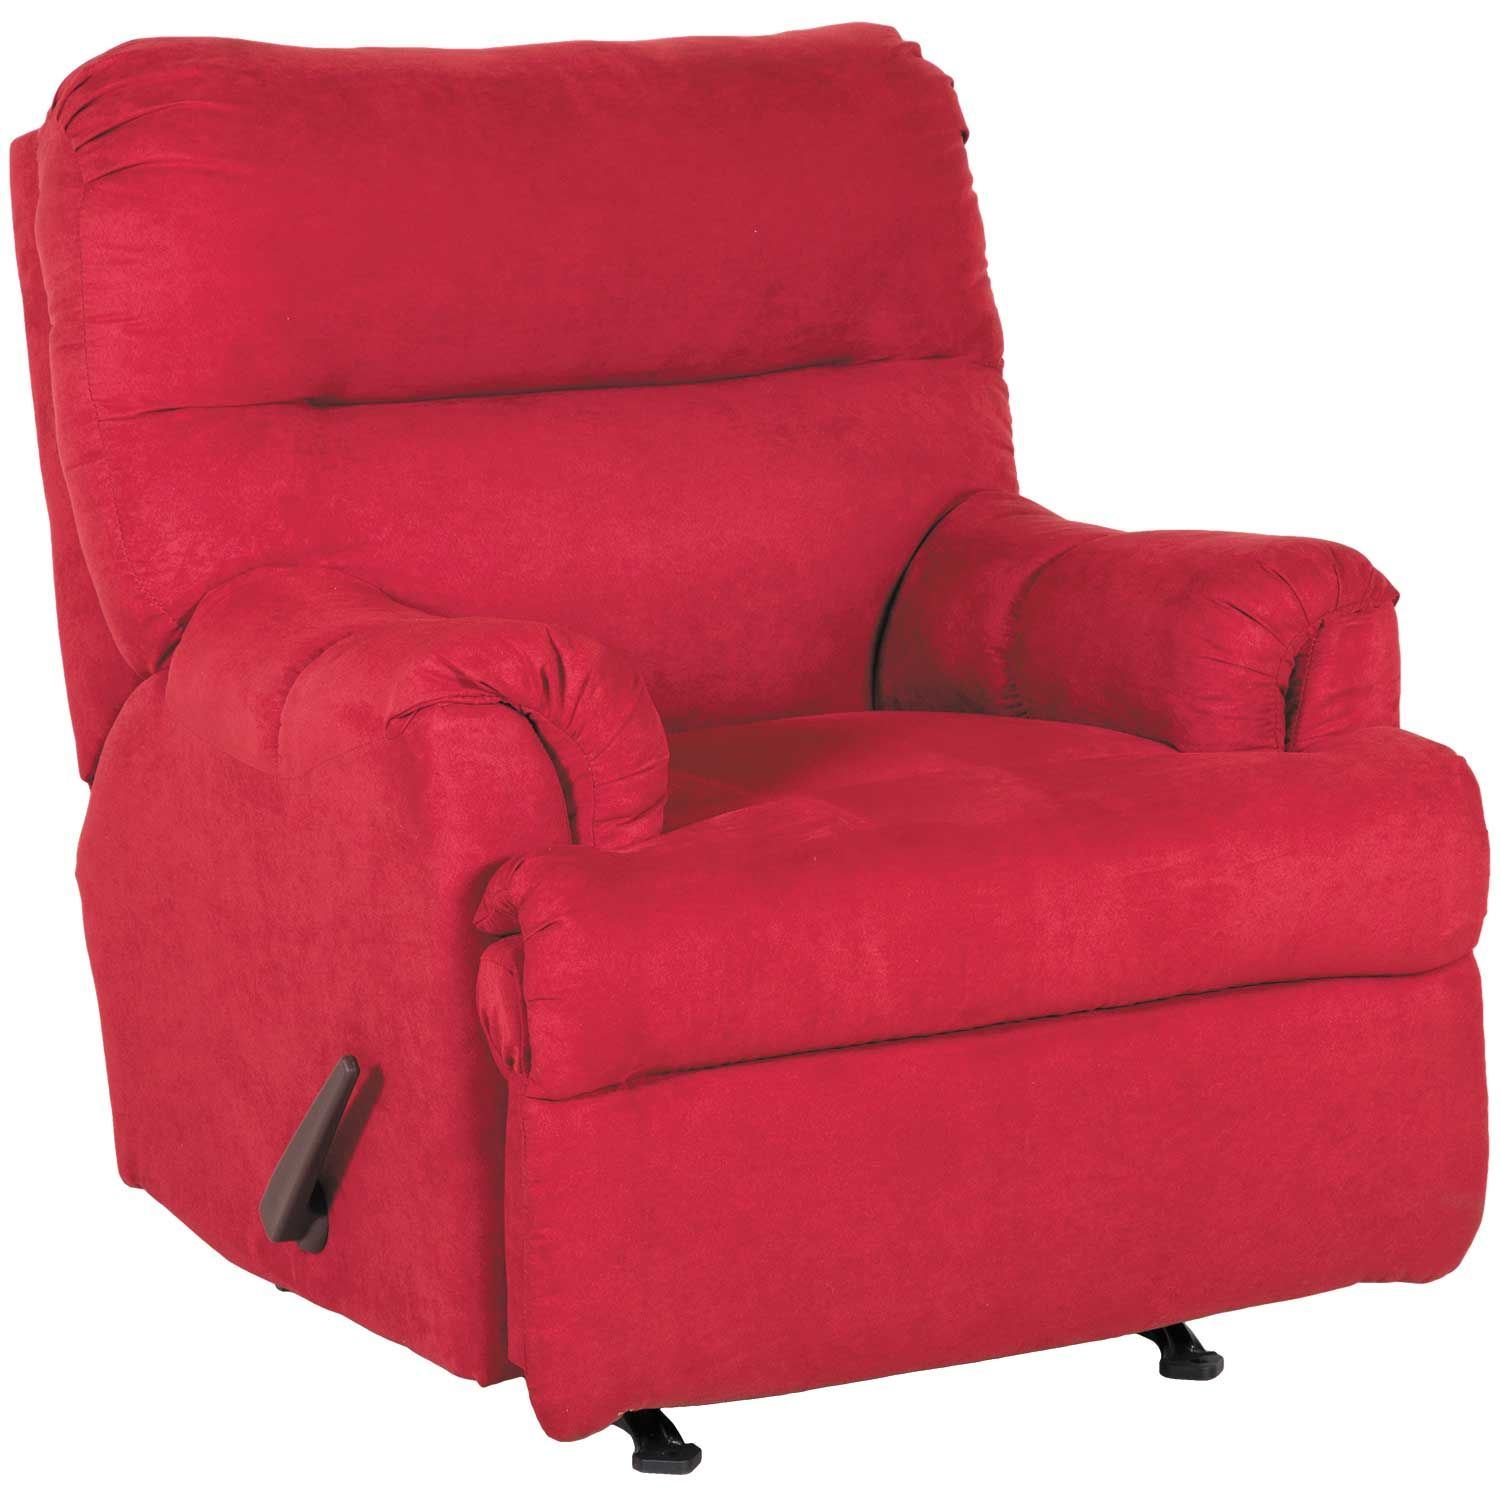 Ashley Furniture Redding Ca: Aden Red Brick Rocker Recliner